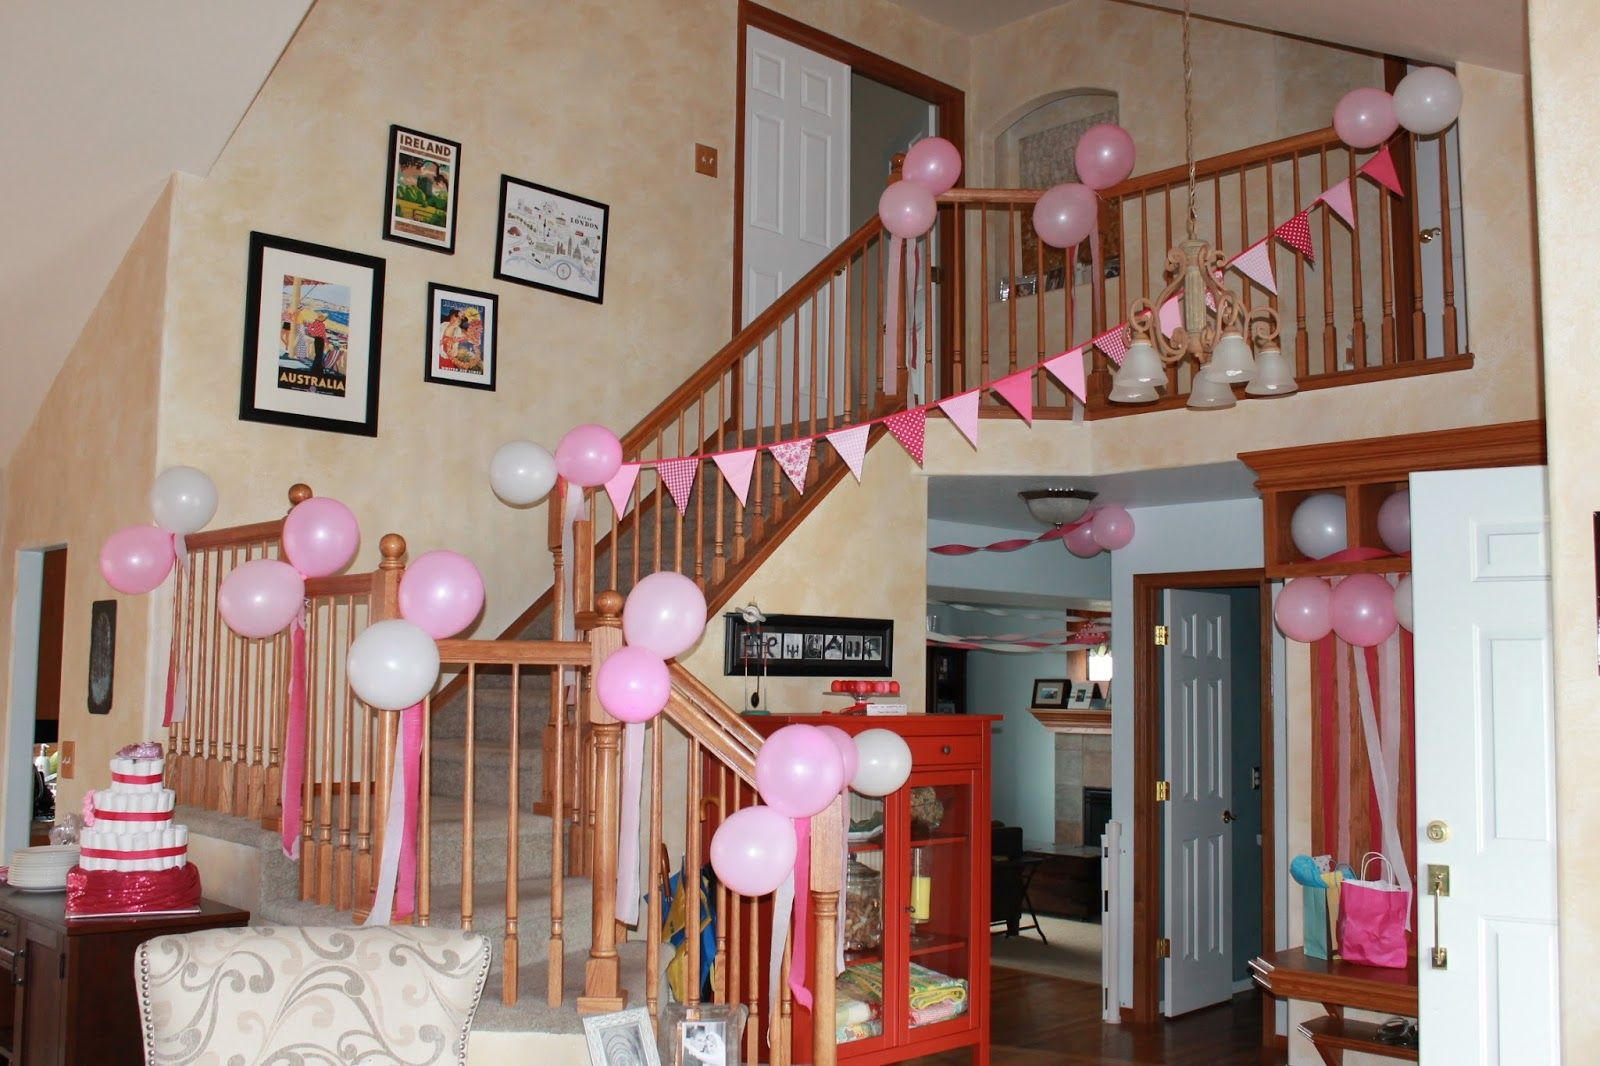 welcome home baby decorations - Google Search | Welcome ...